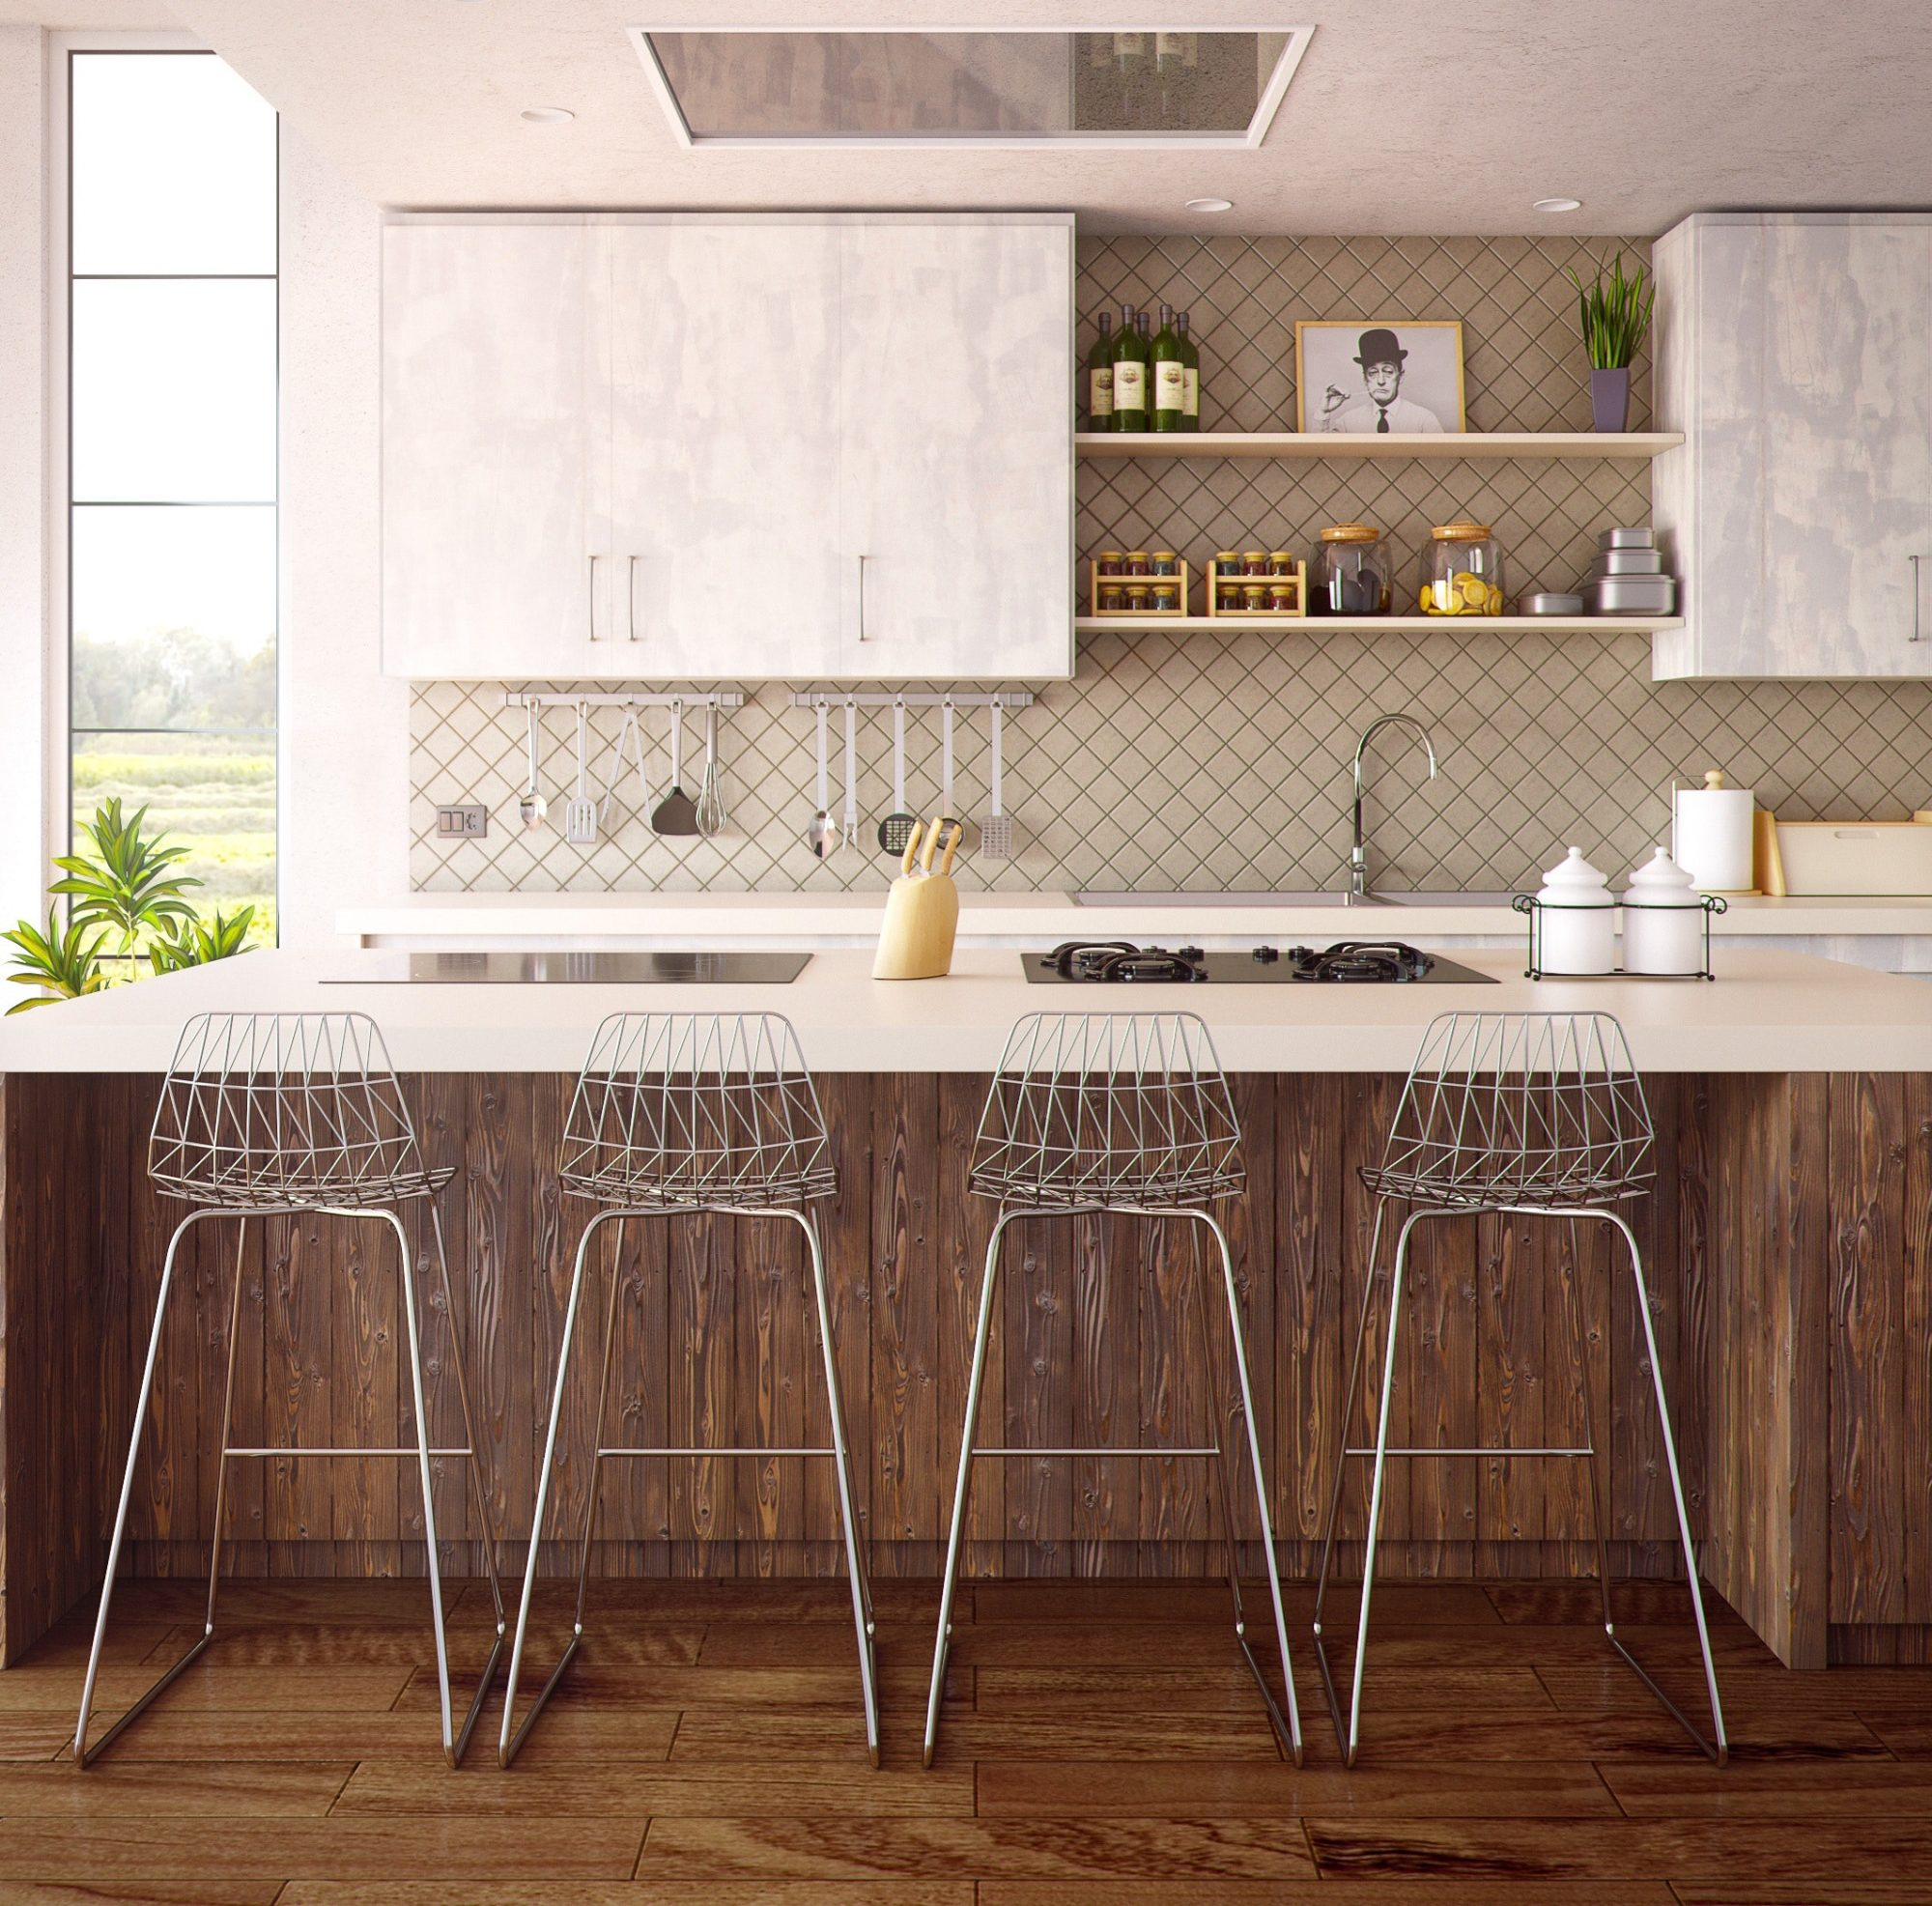 architecture-cabinets-chairs-contemporary-279648